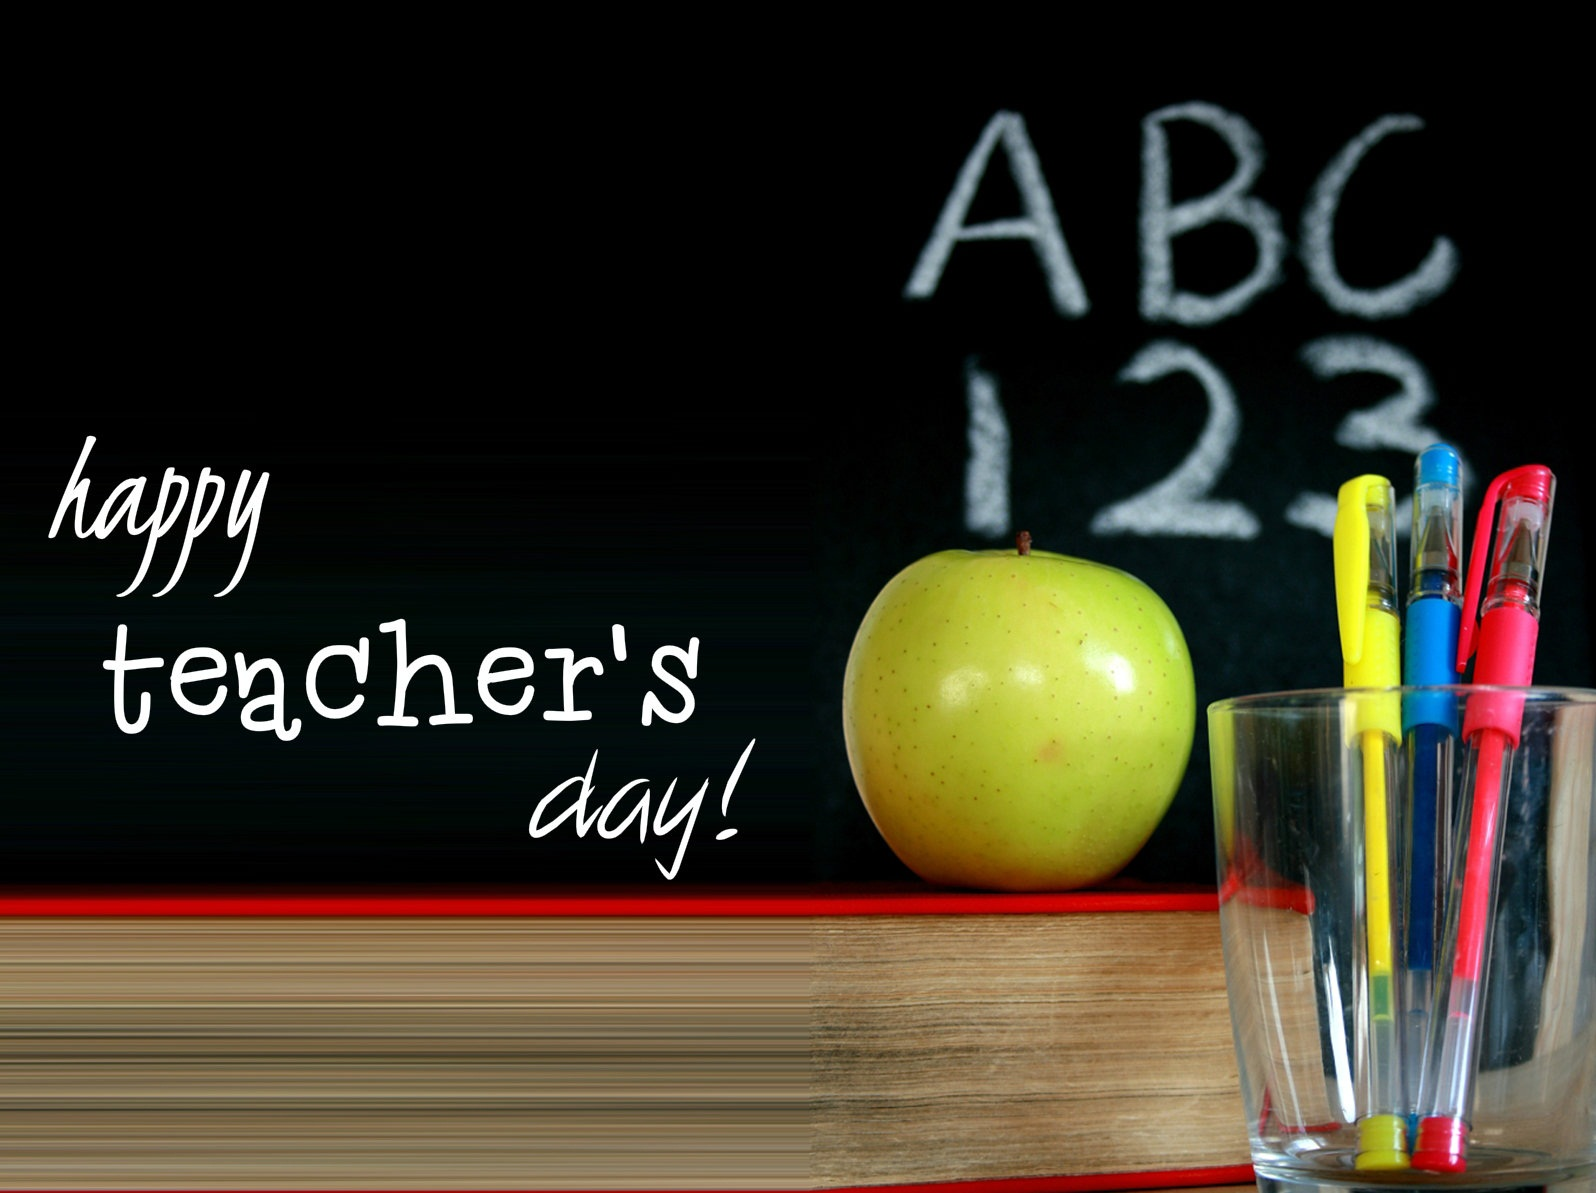 Is Apple Significant for Teacher's Day?